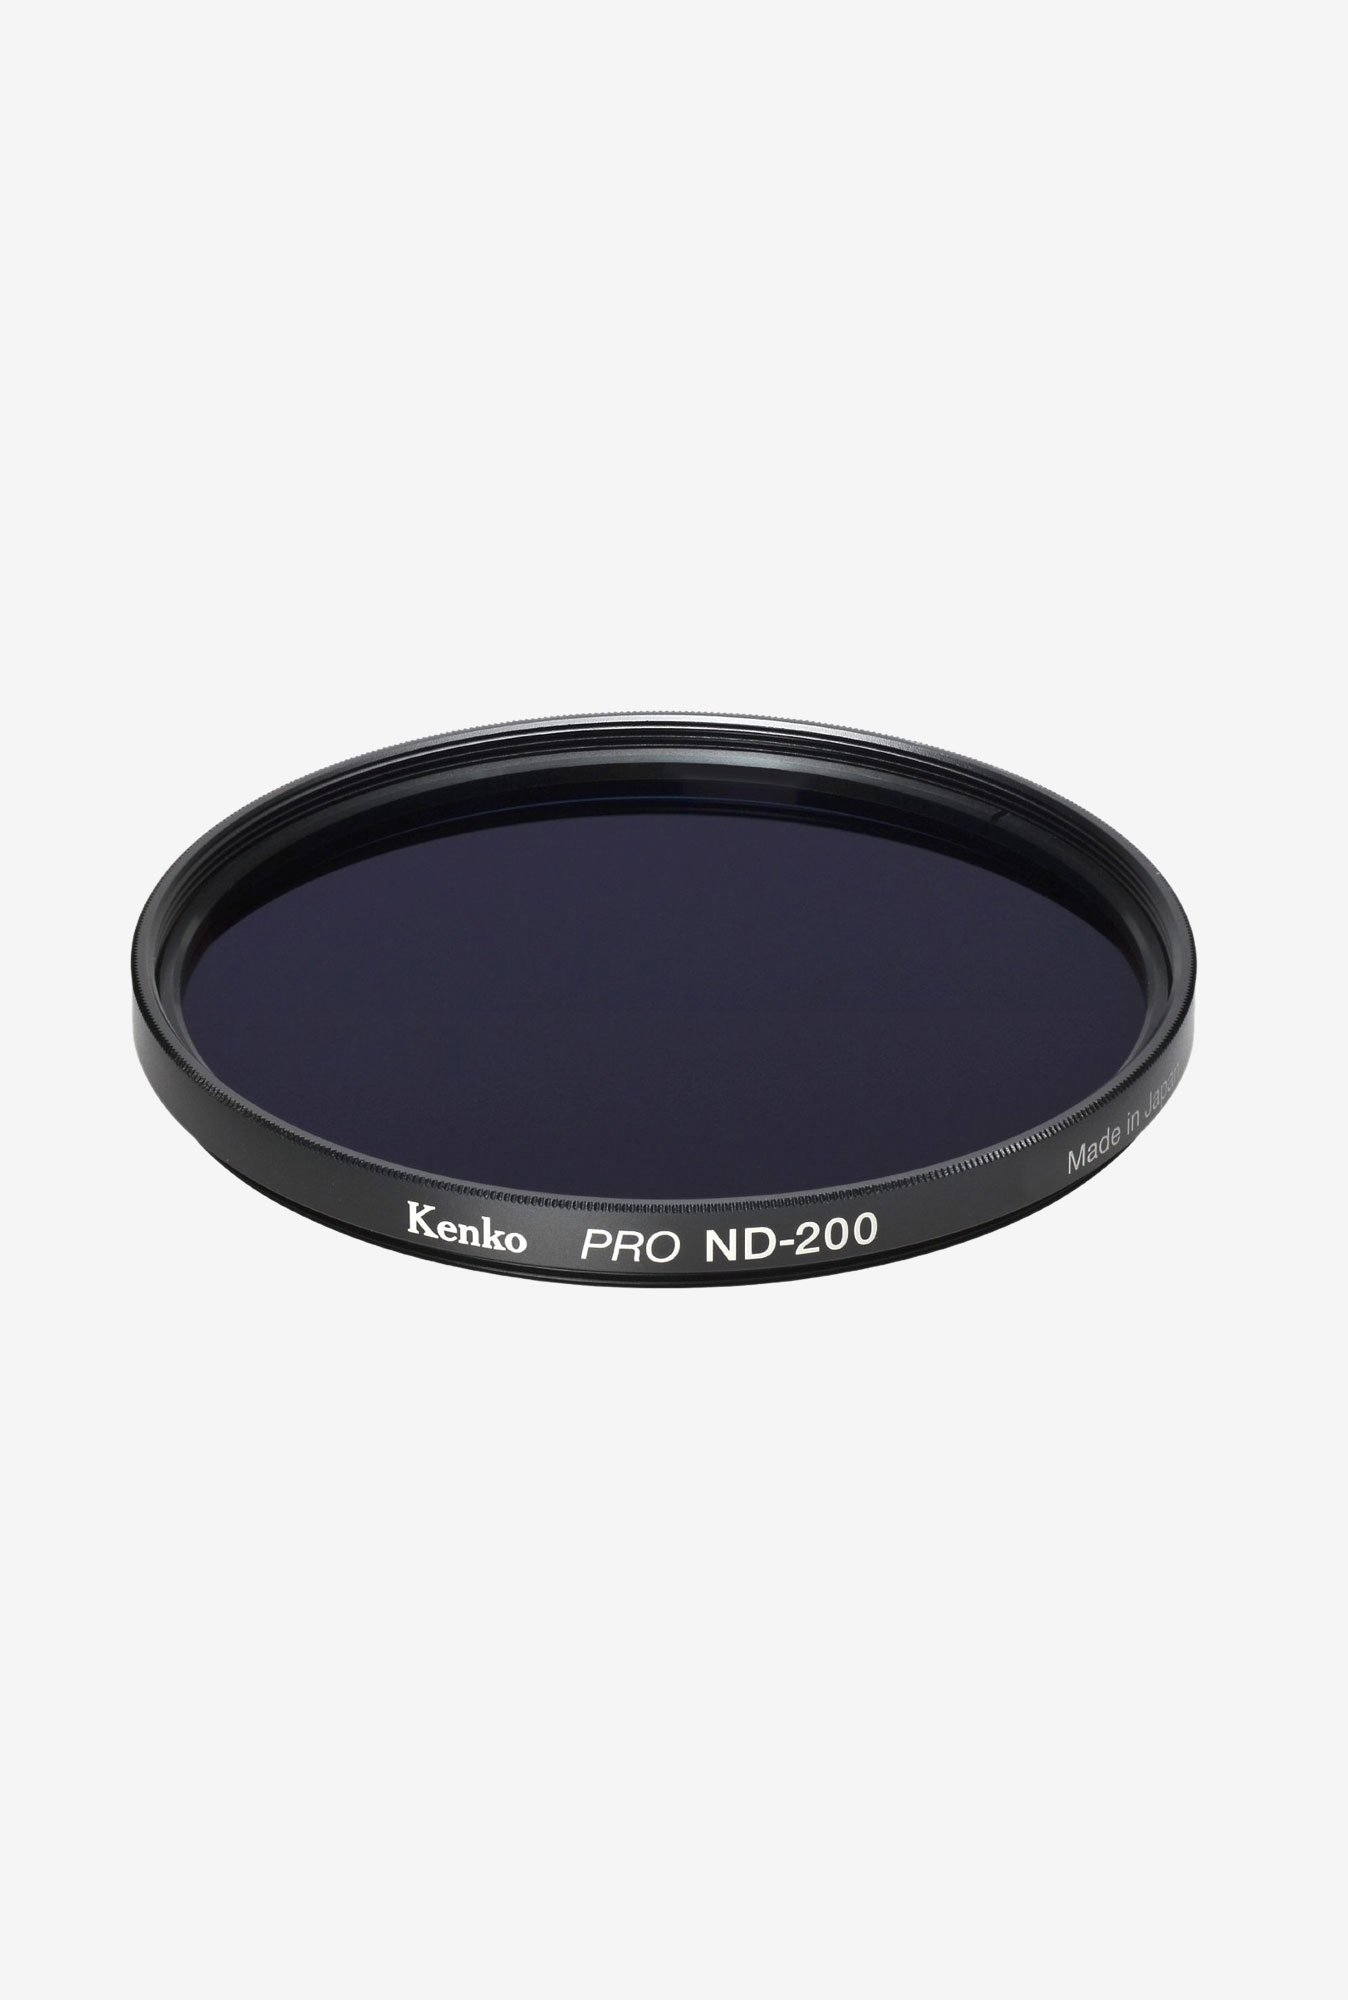 Kenko 58mm Pro ND200 Multicoated Camera Lens Filter (Black)